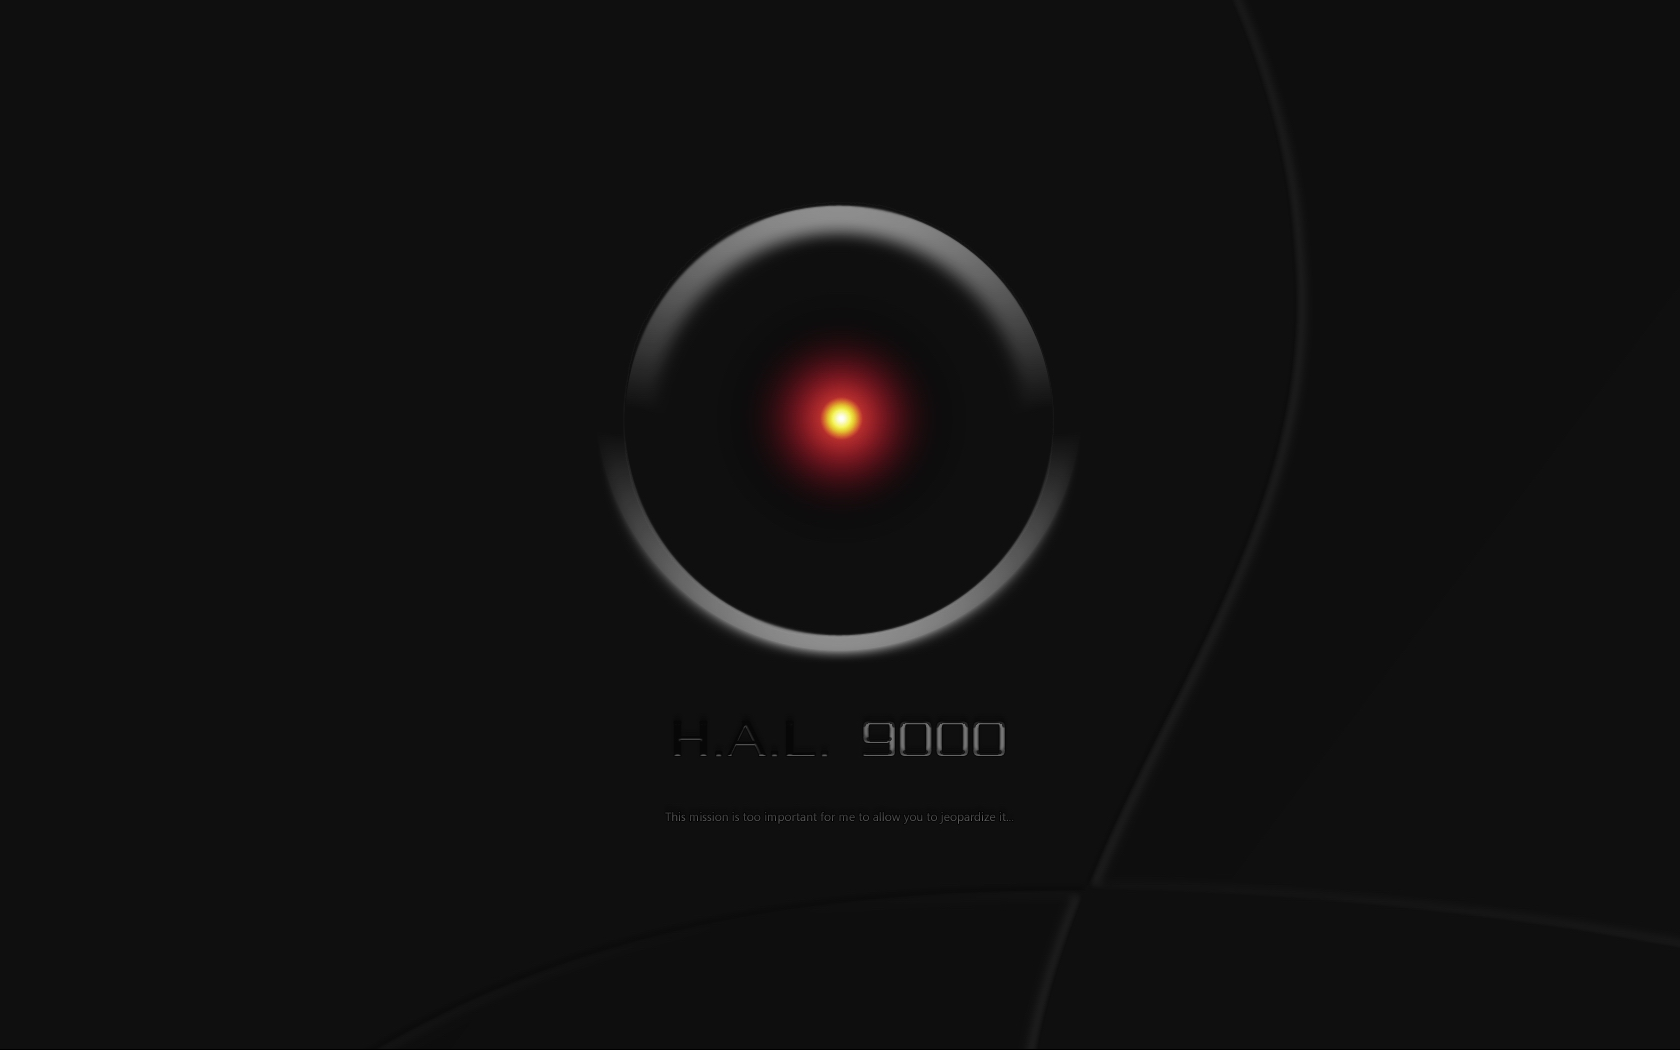 2001 hal 9000 by ultradax desktop wallpaper